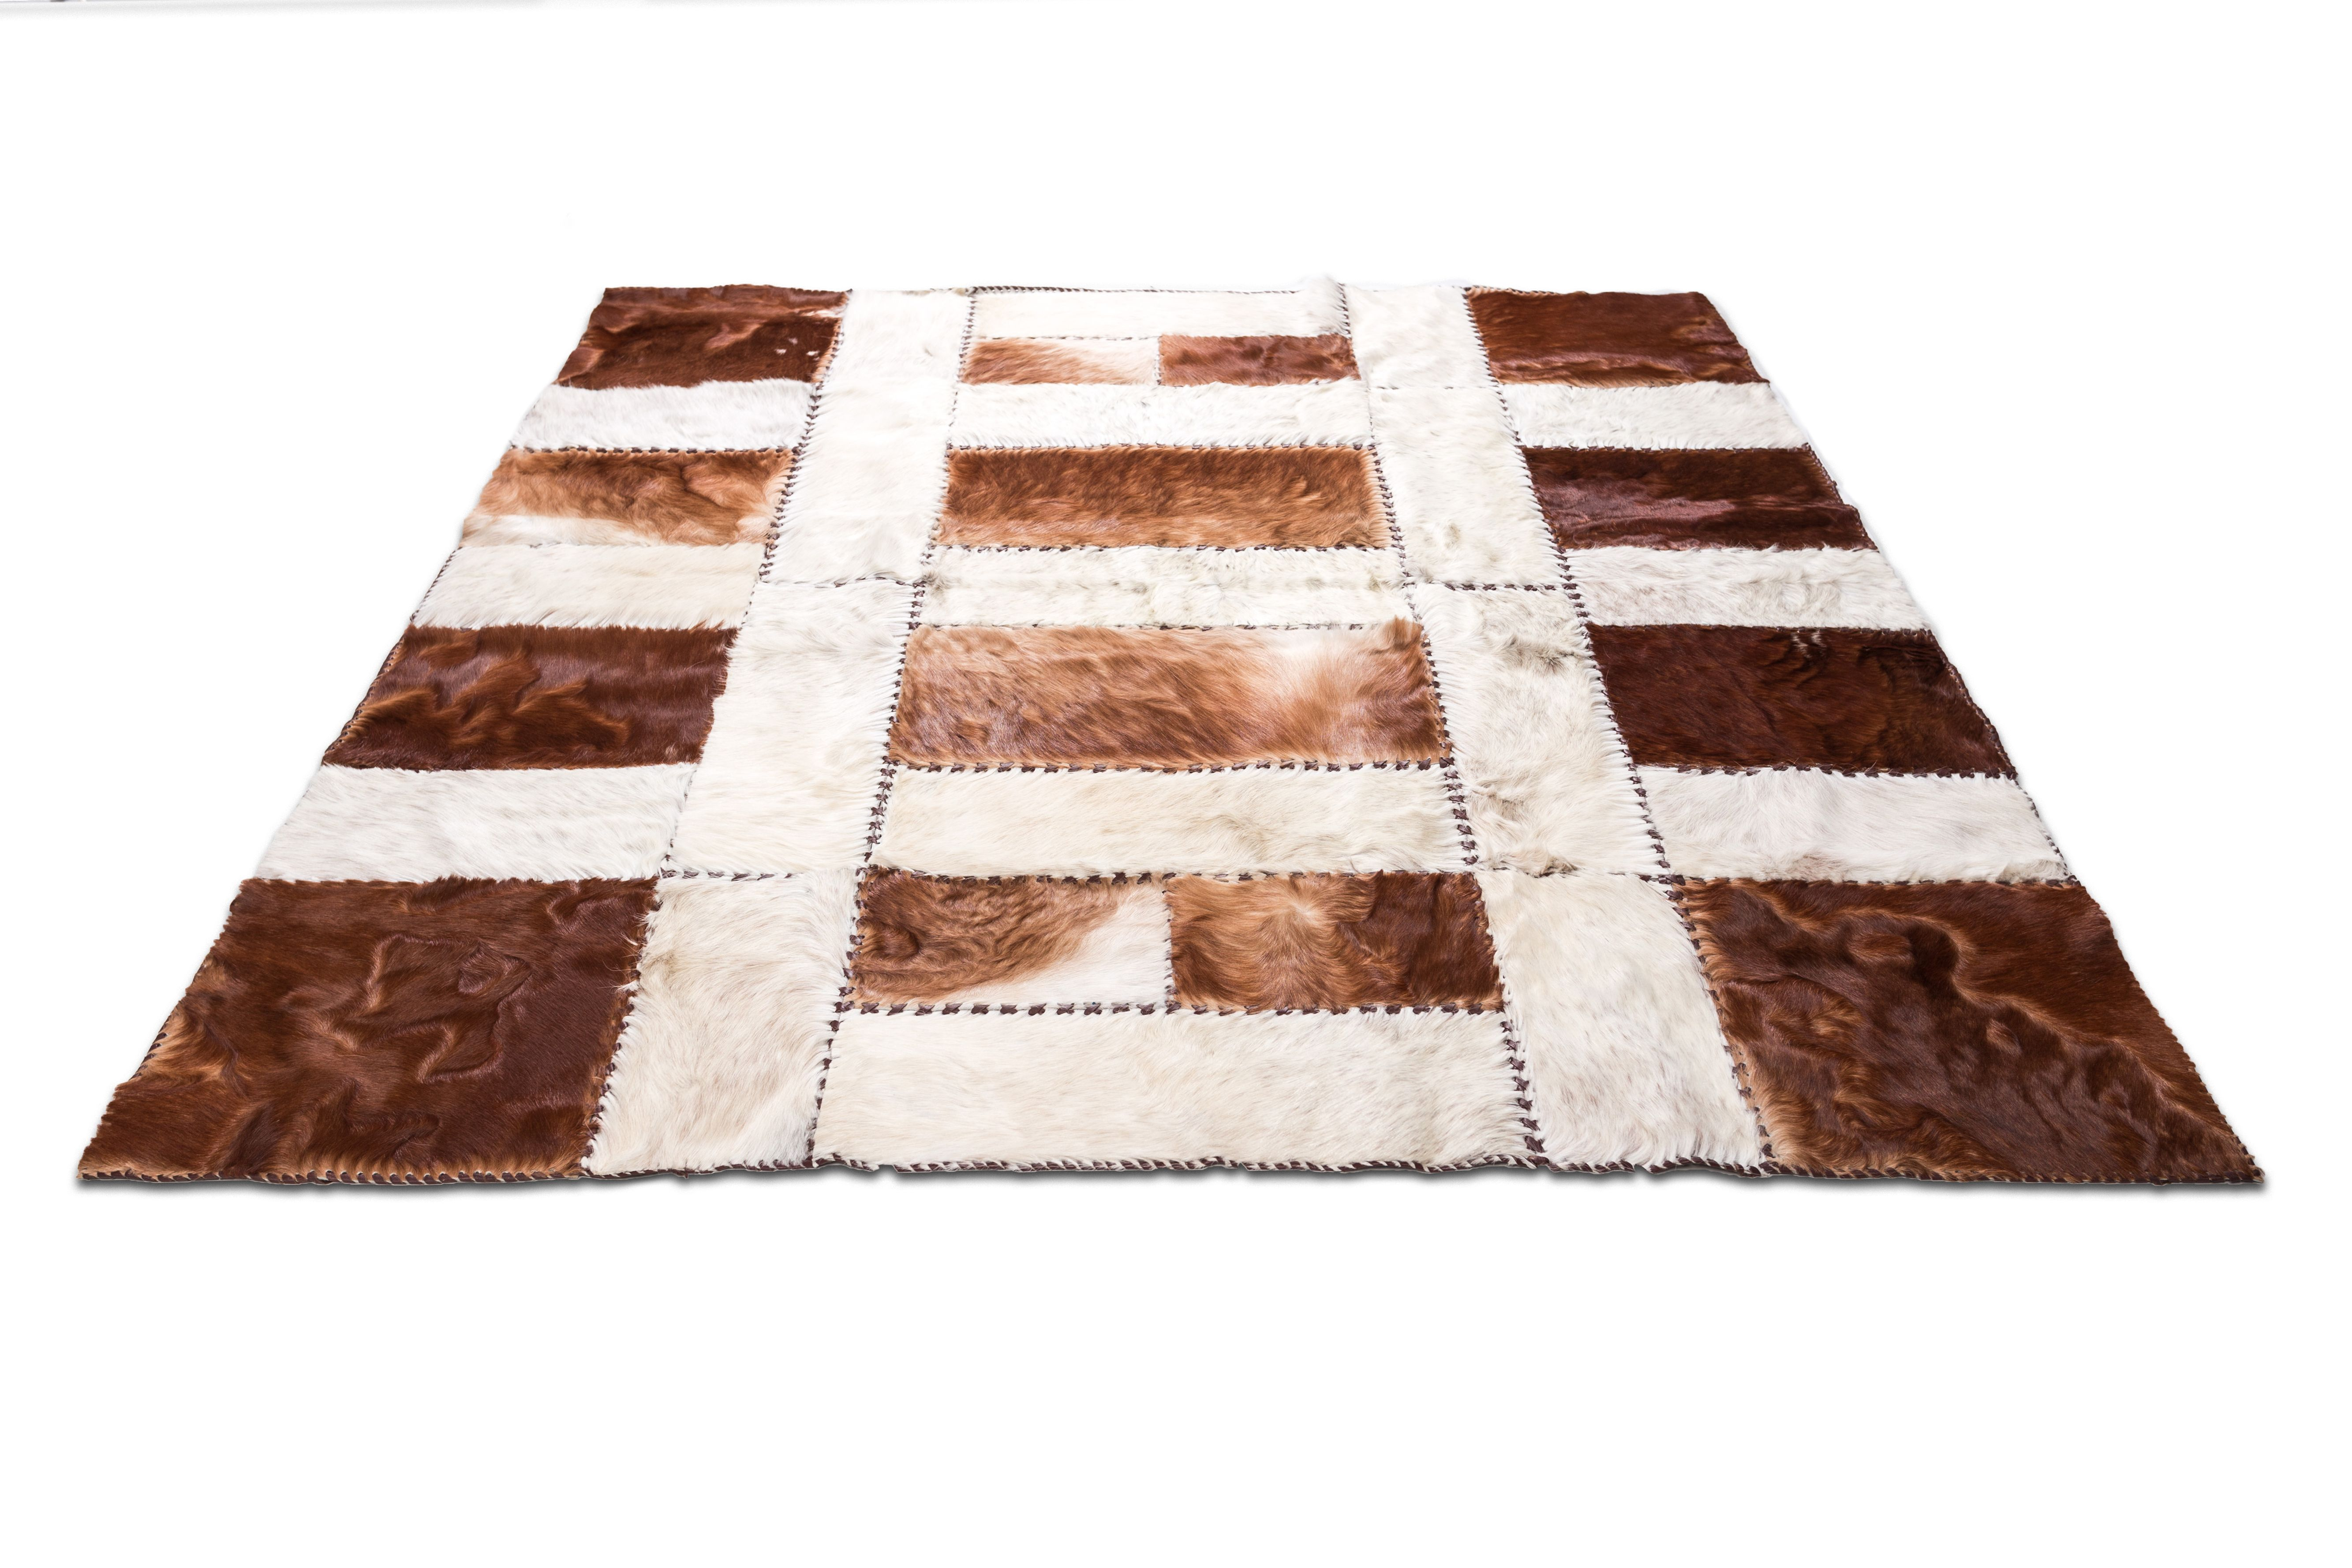 Pin By Aydin Hides On Cowhide Patchwork Rug Square Xl Patchwork Cowhide Patchwork Cowhide Rug Patchwork Rugs